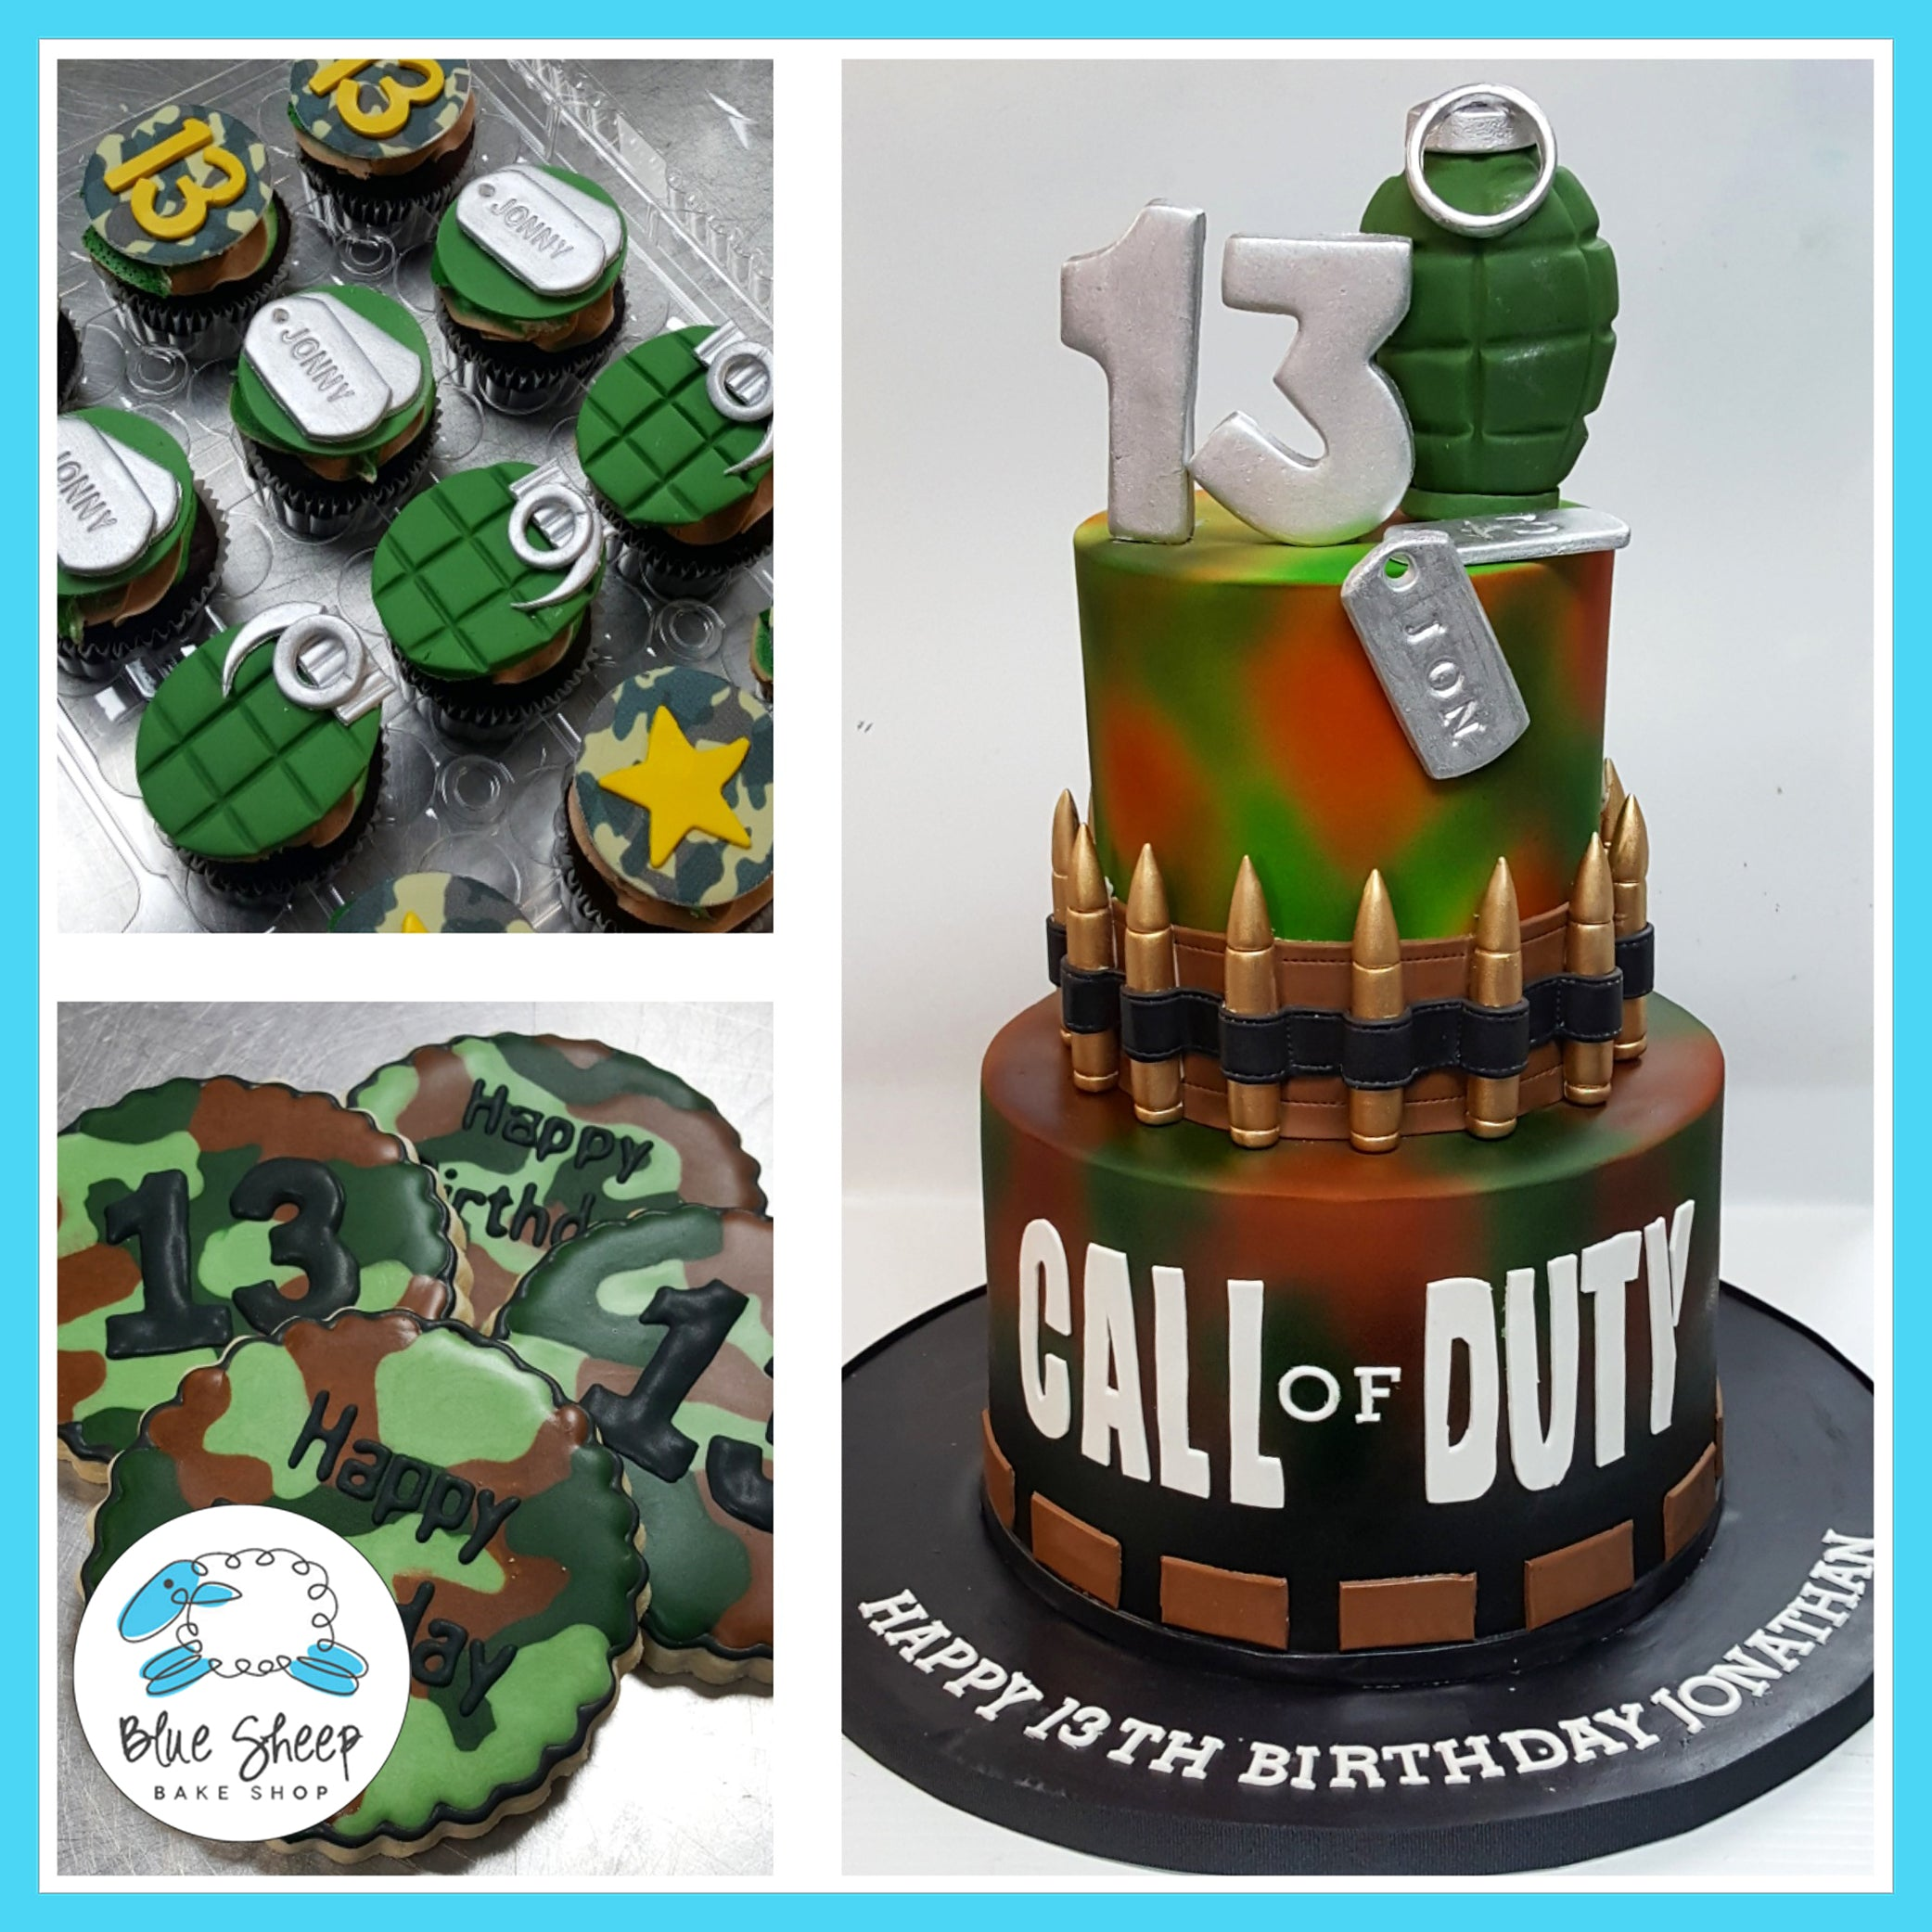 Terrific Call Of Duty Video Game Cake Nj Custom Cakes Blue Sheep Bake Shop Funny Birthday Cards Online Inifofree Goldxyz